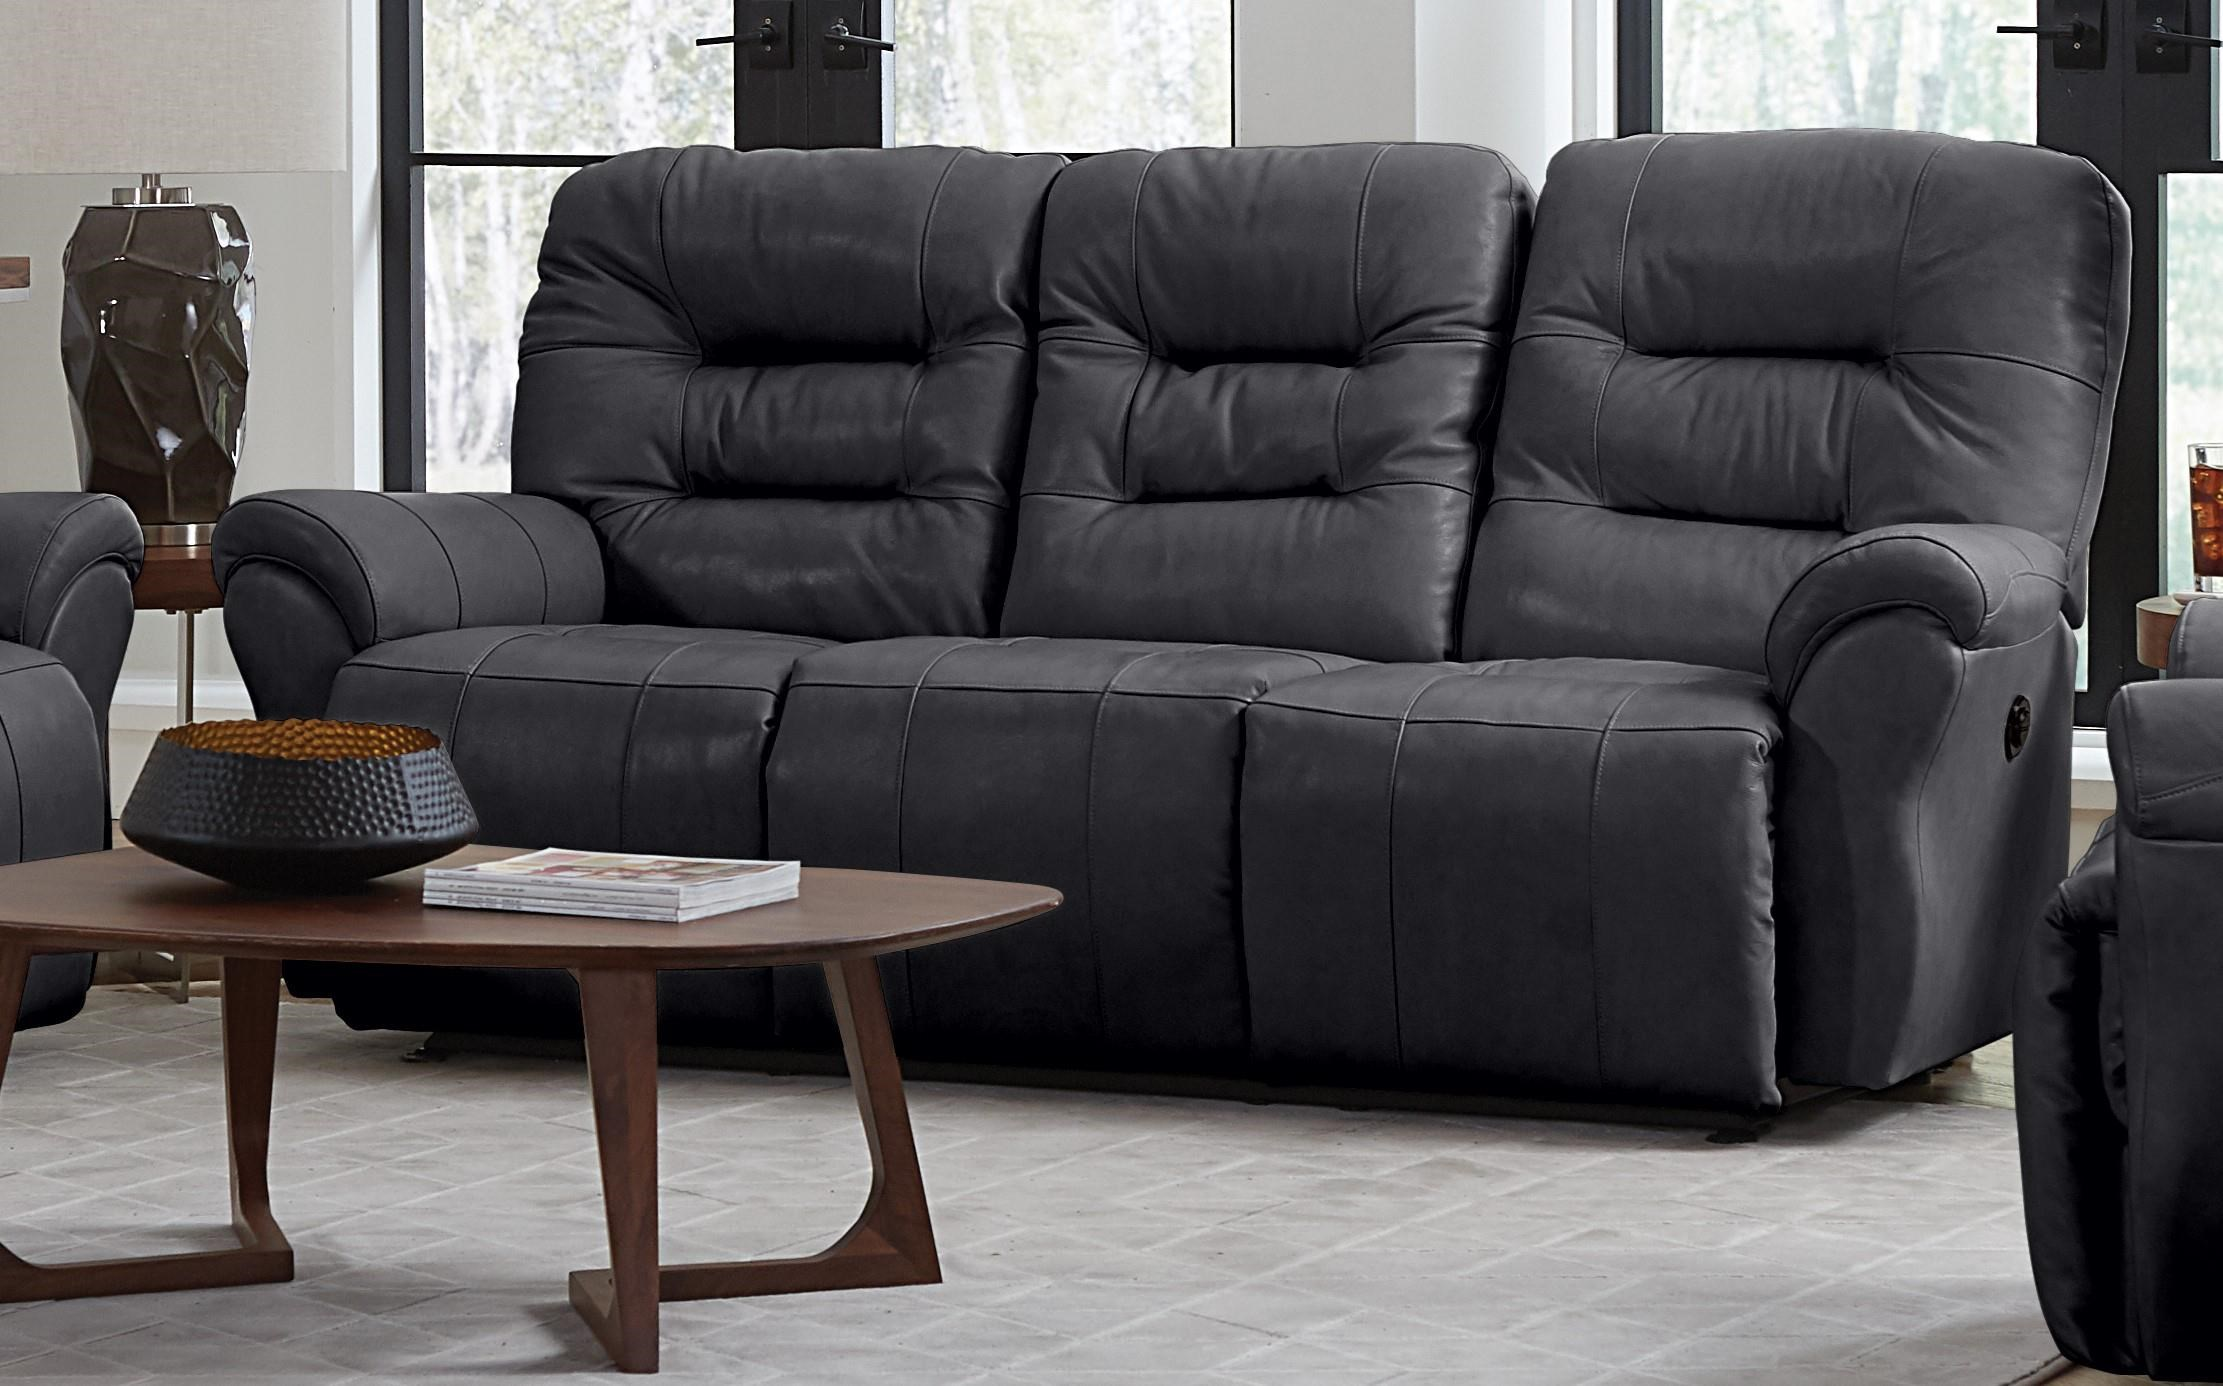 Unity Leather Power Space Saver Sofa Chaise by Best Home Furnishings at Furniture Fair - North Carolina